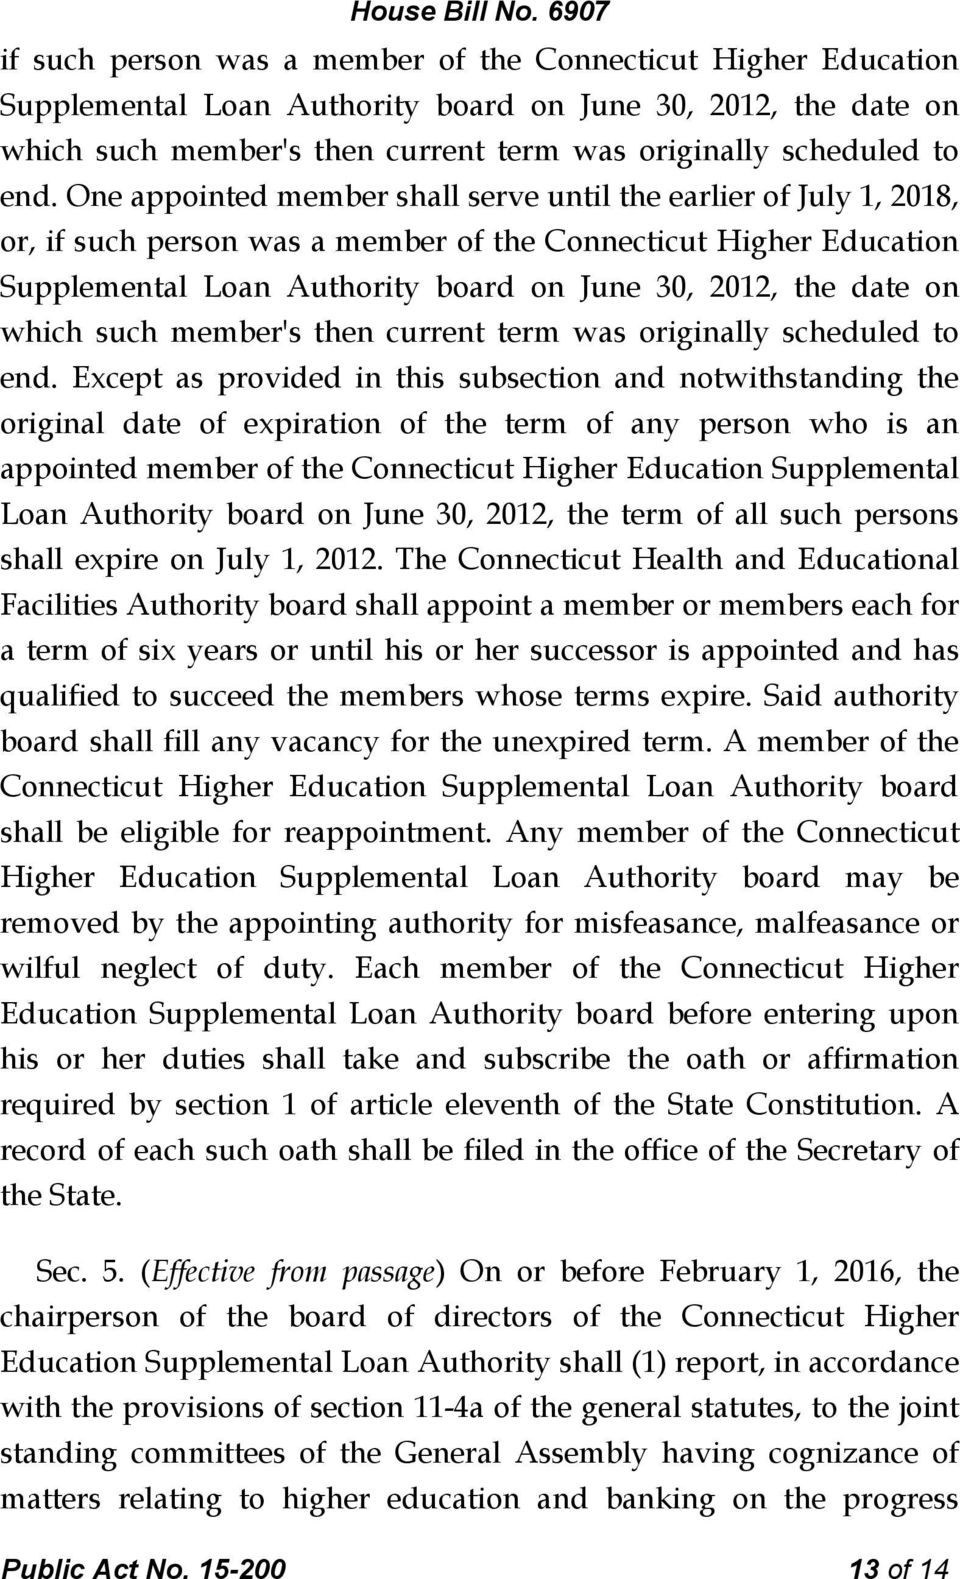 appointed member of the Connecticut Higher Education Supplemental Loan Authority board on June 30, 2012, the term of all such persons shall expire on July 1, 2012.